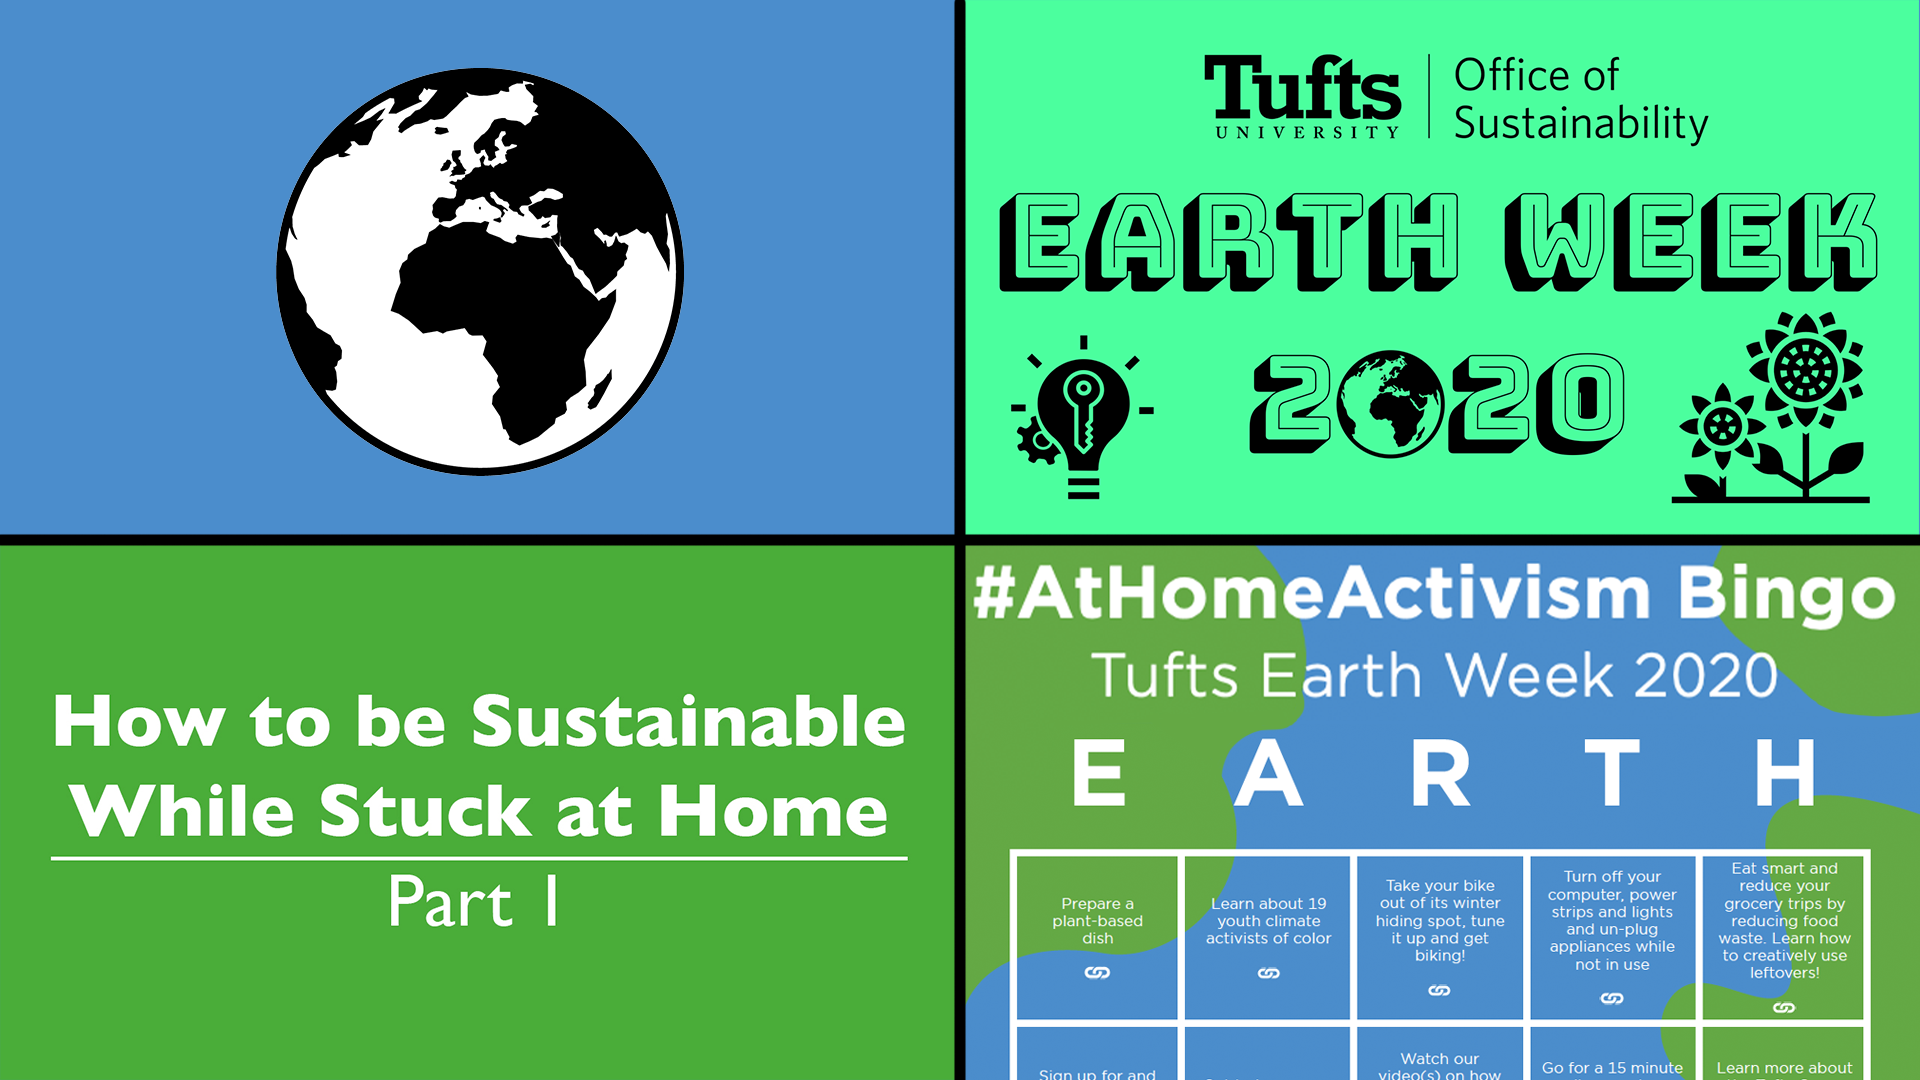 4-paned graphic of an earth icon, earth week 2020 poster, sustainability video poster and earth week bingo poster